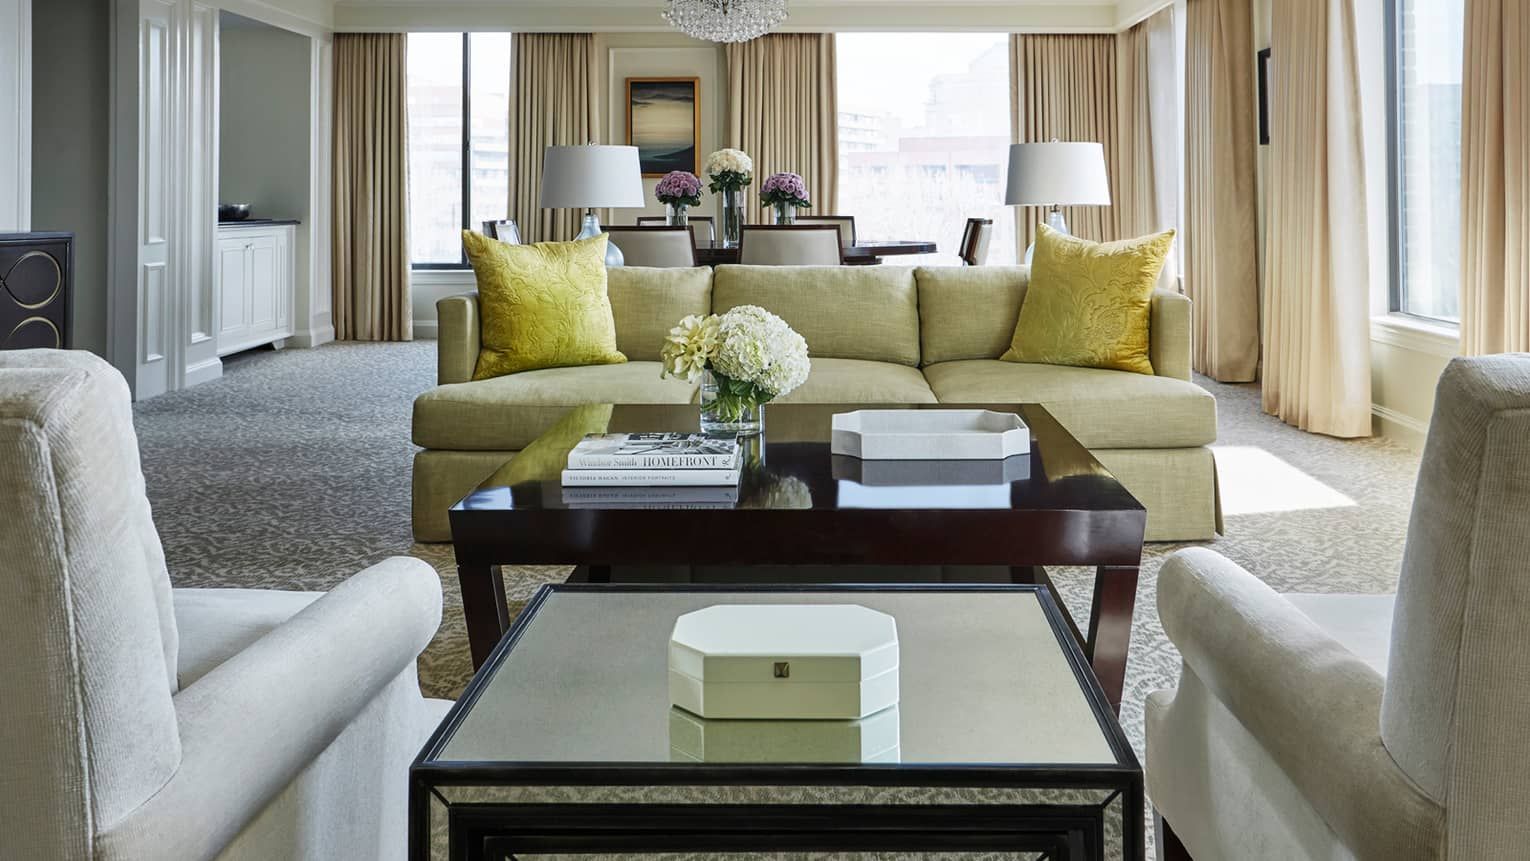 Presidential Suite East Wing living room with two white armchairs yellow sofa and accent pillows in front of dining room